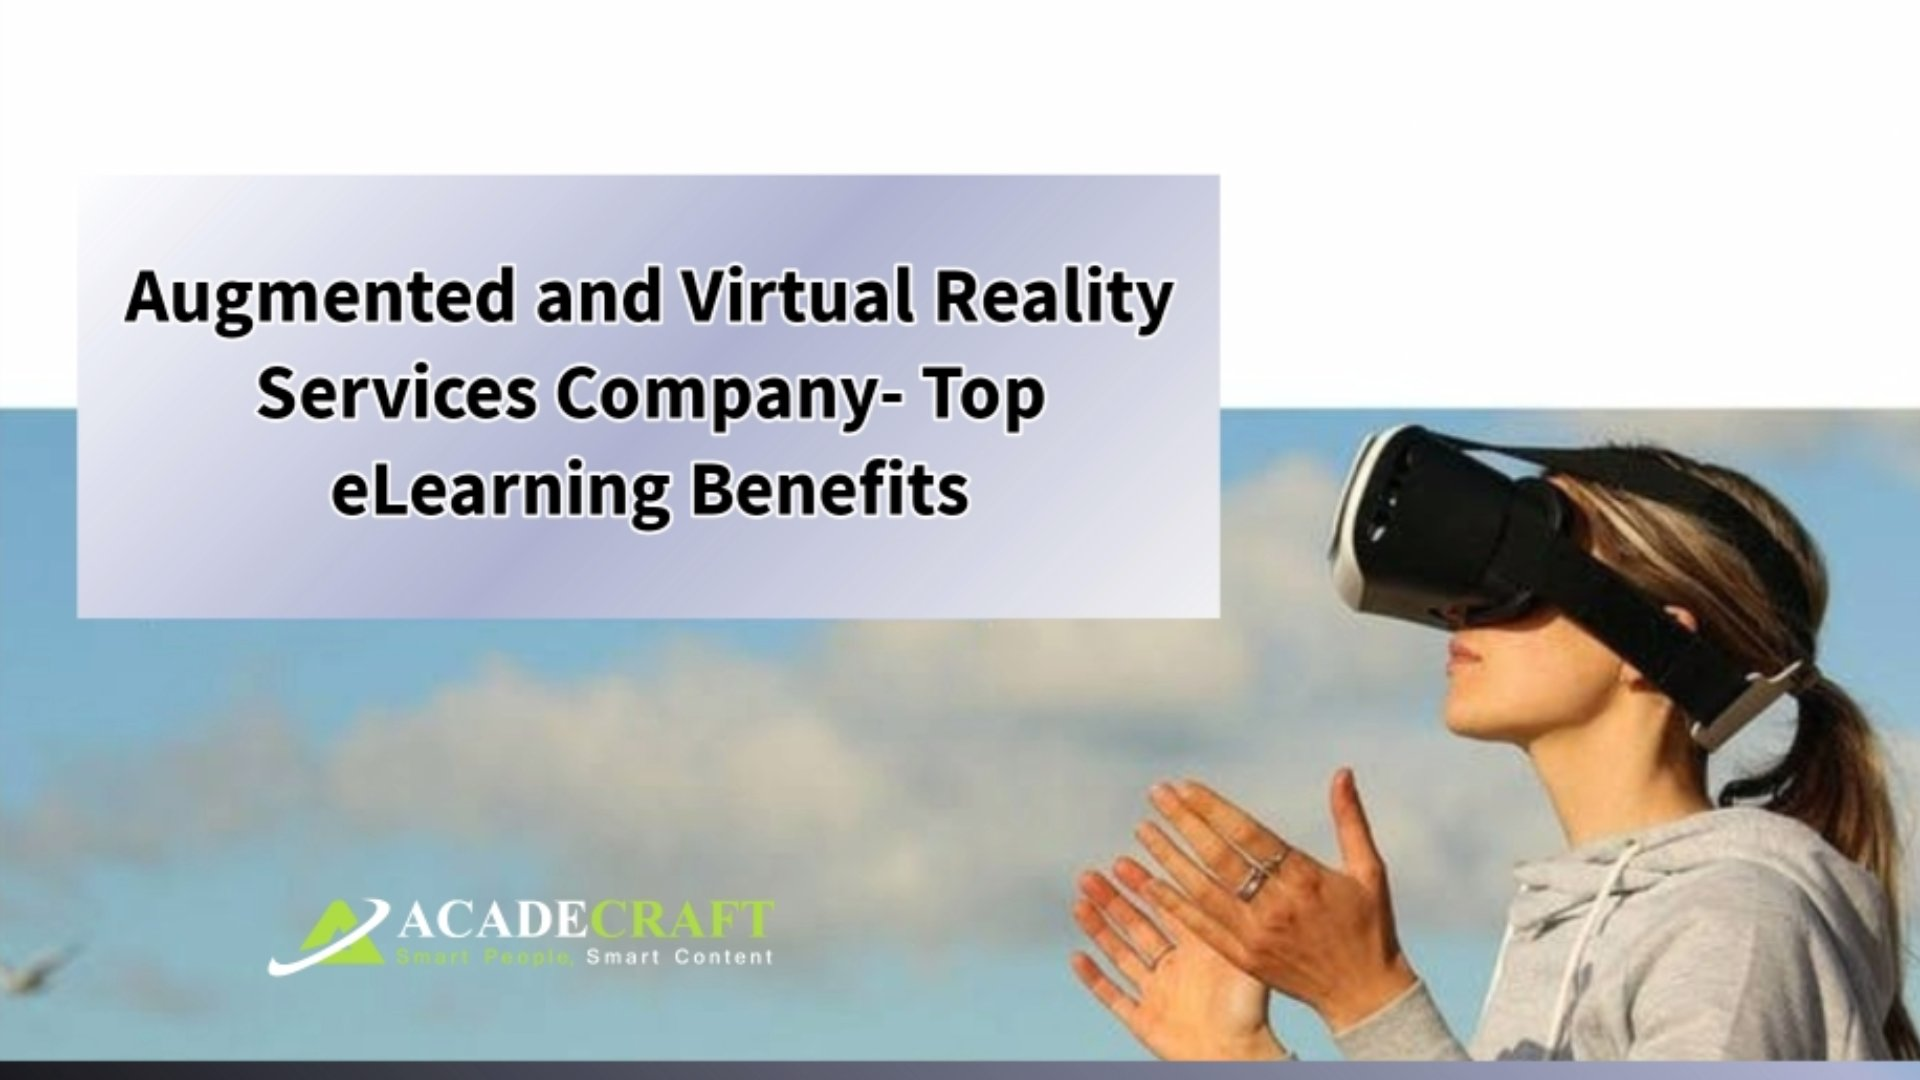 Augmented & Virtual Reality Services Company-Top eLearning Benefits